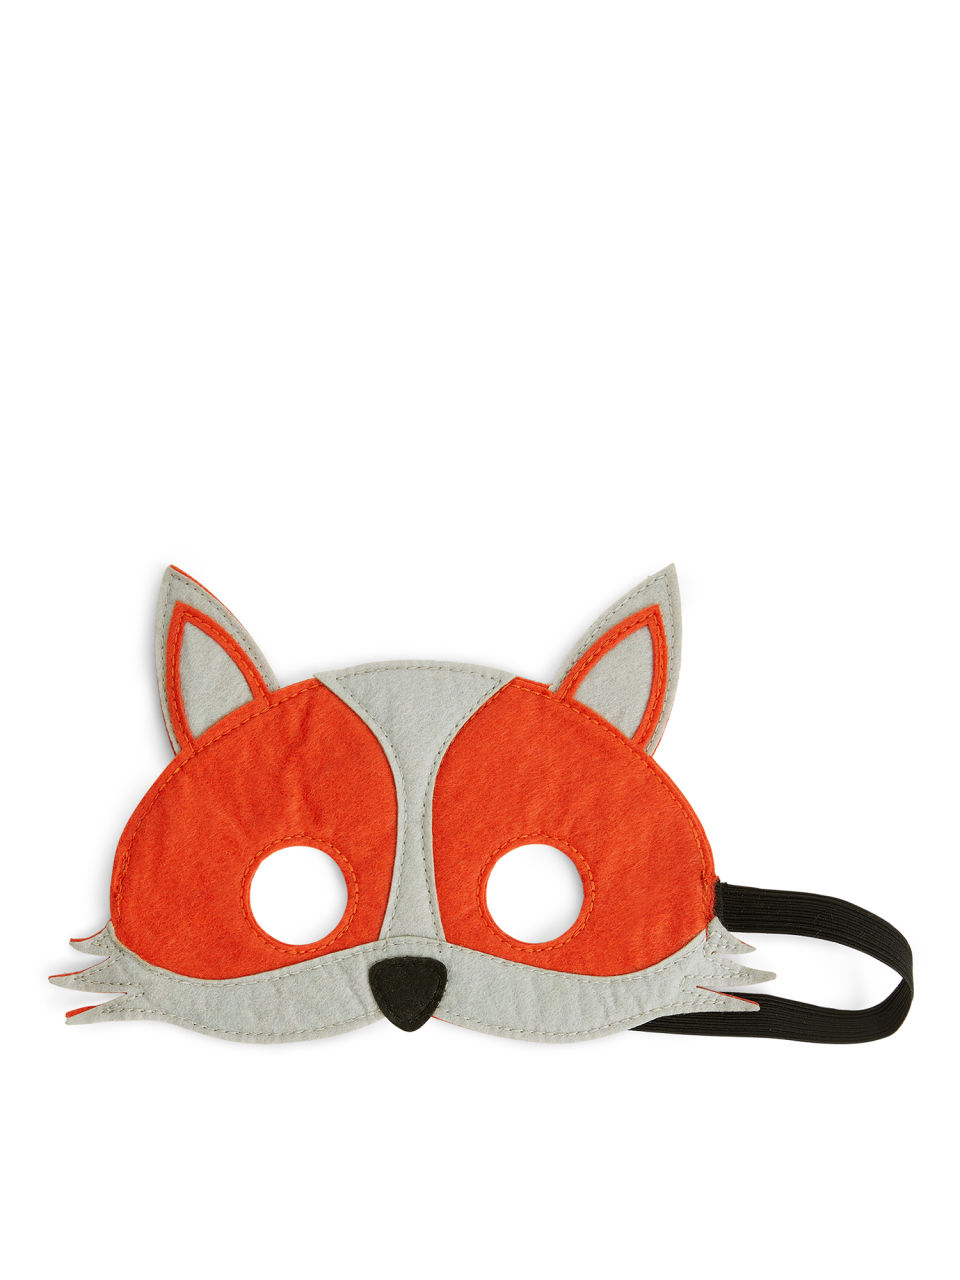 Side image of Arket animal mask in orange